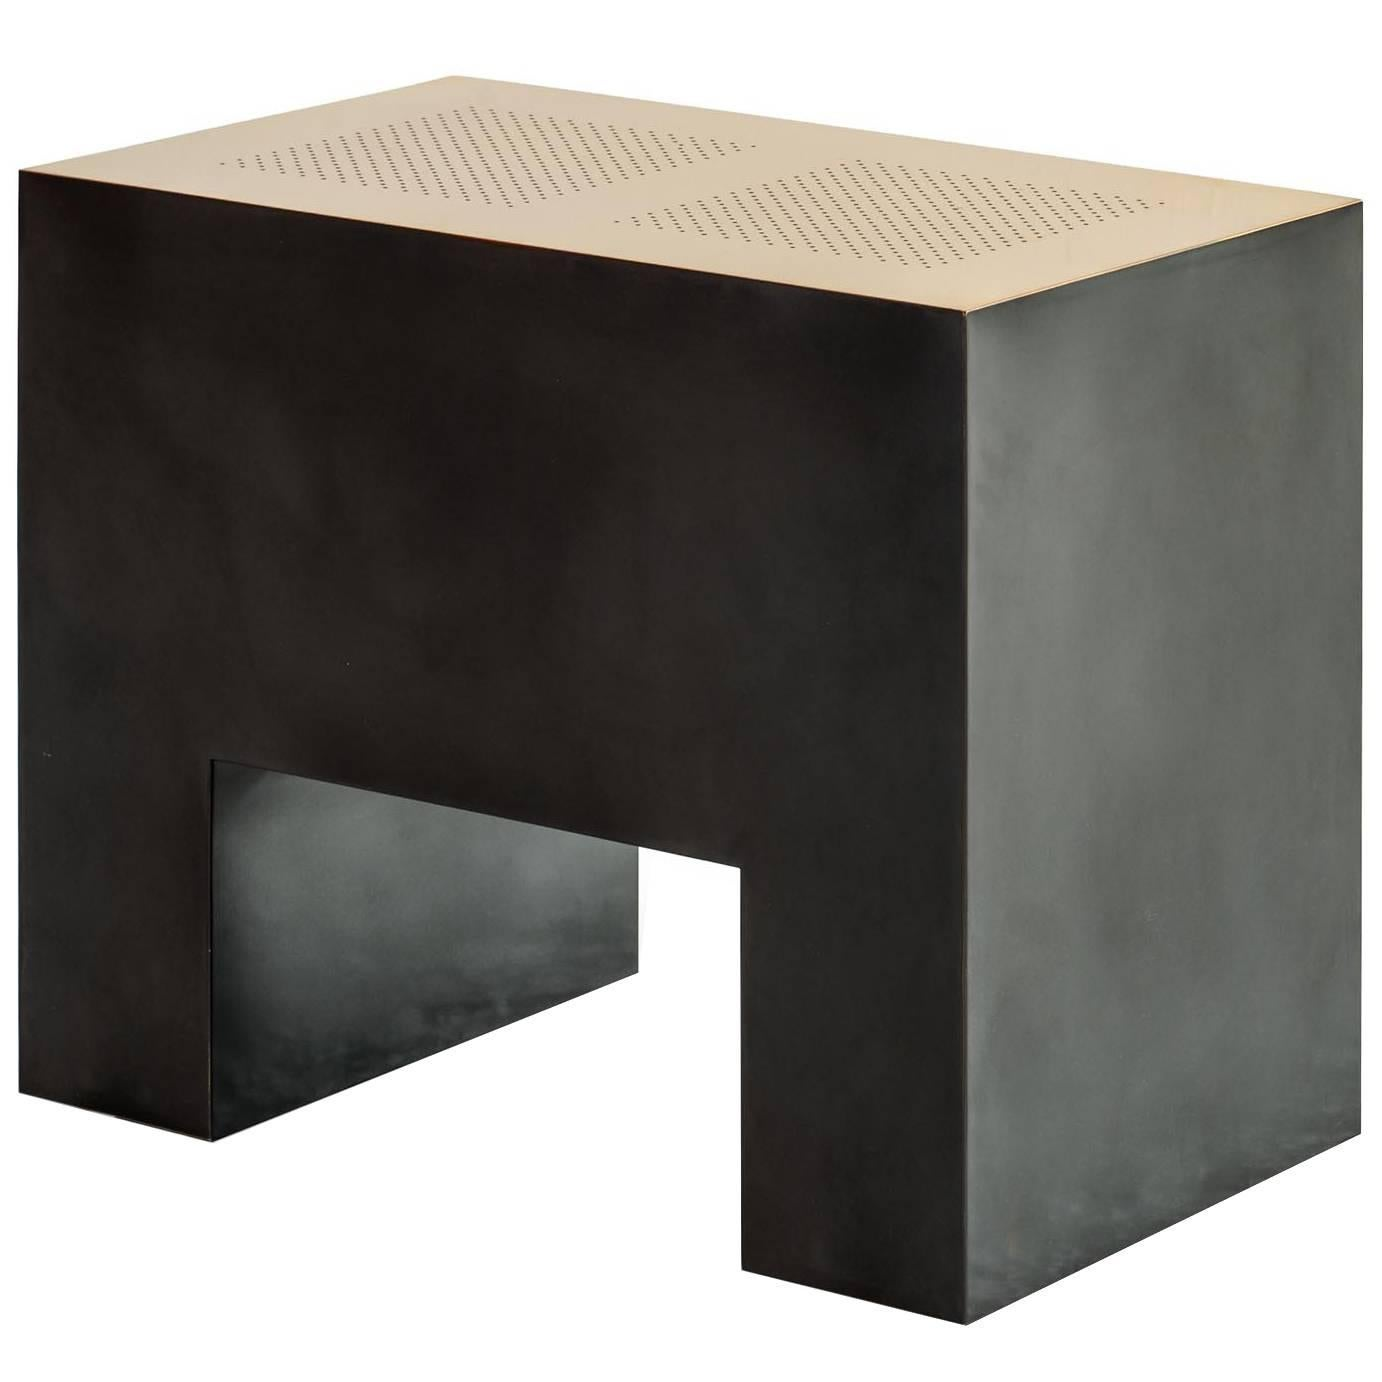 Klaus End Table, Folded Bronze with Perforated Top and Patinated Sides